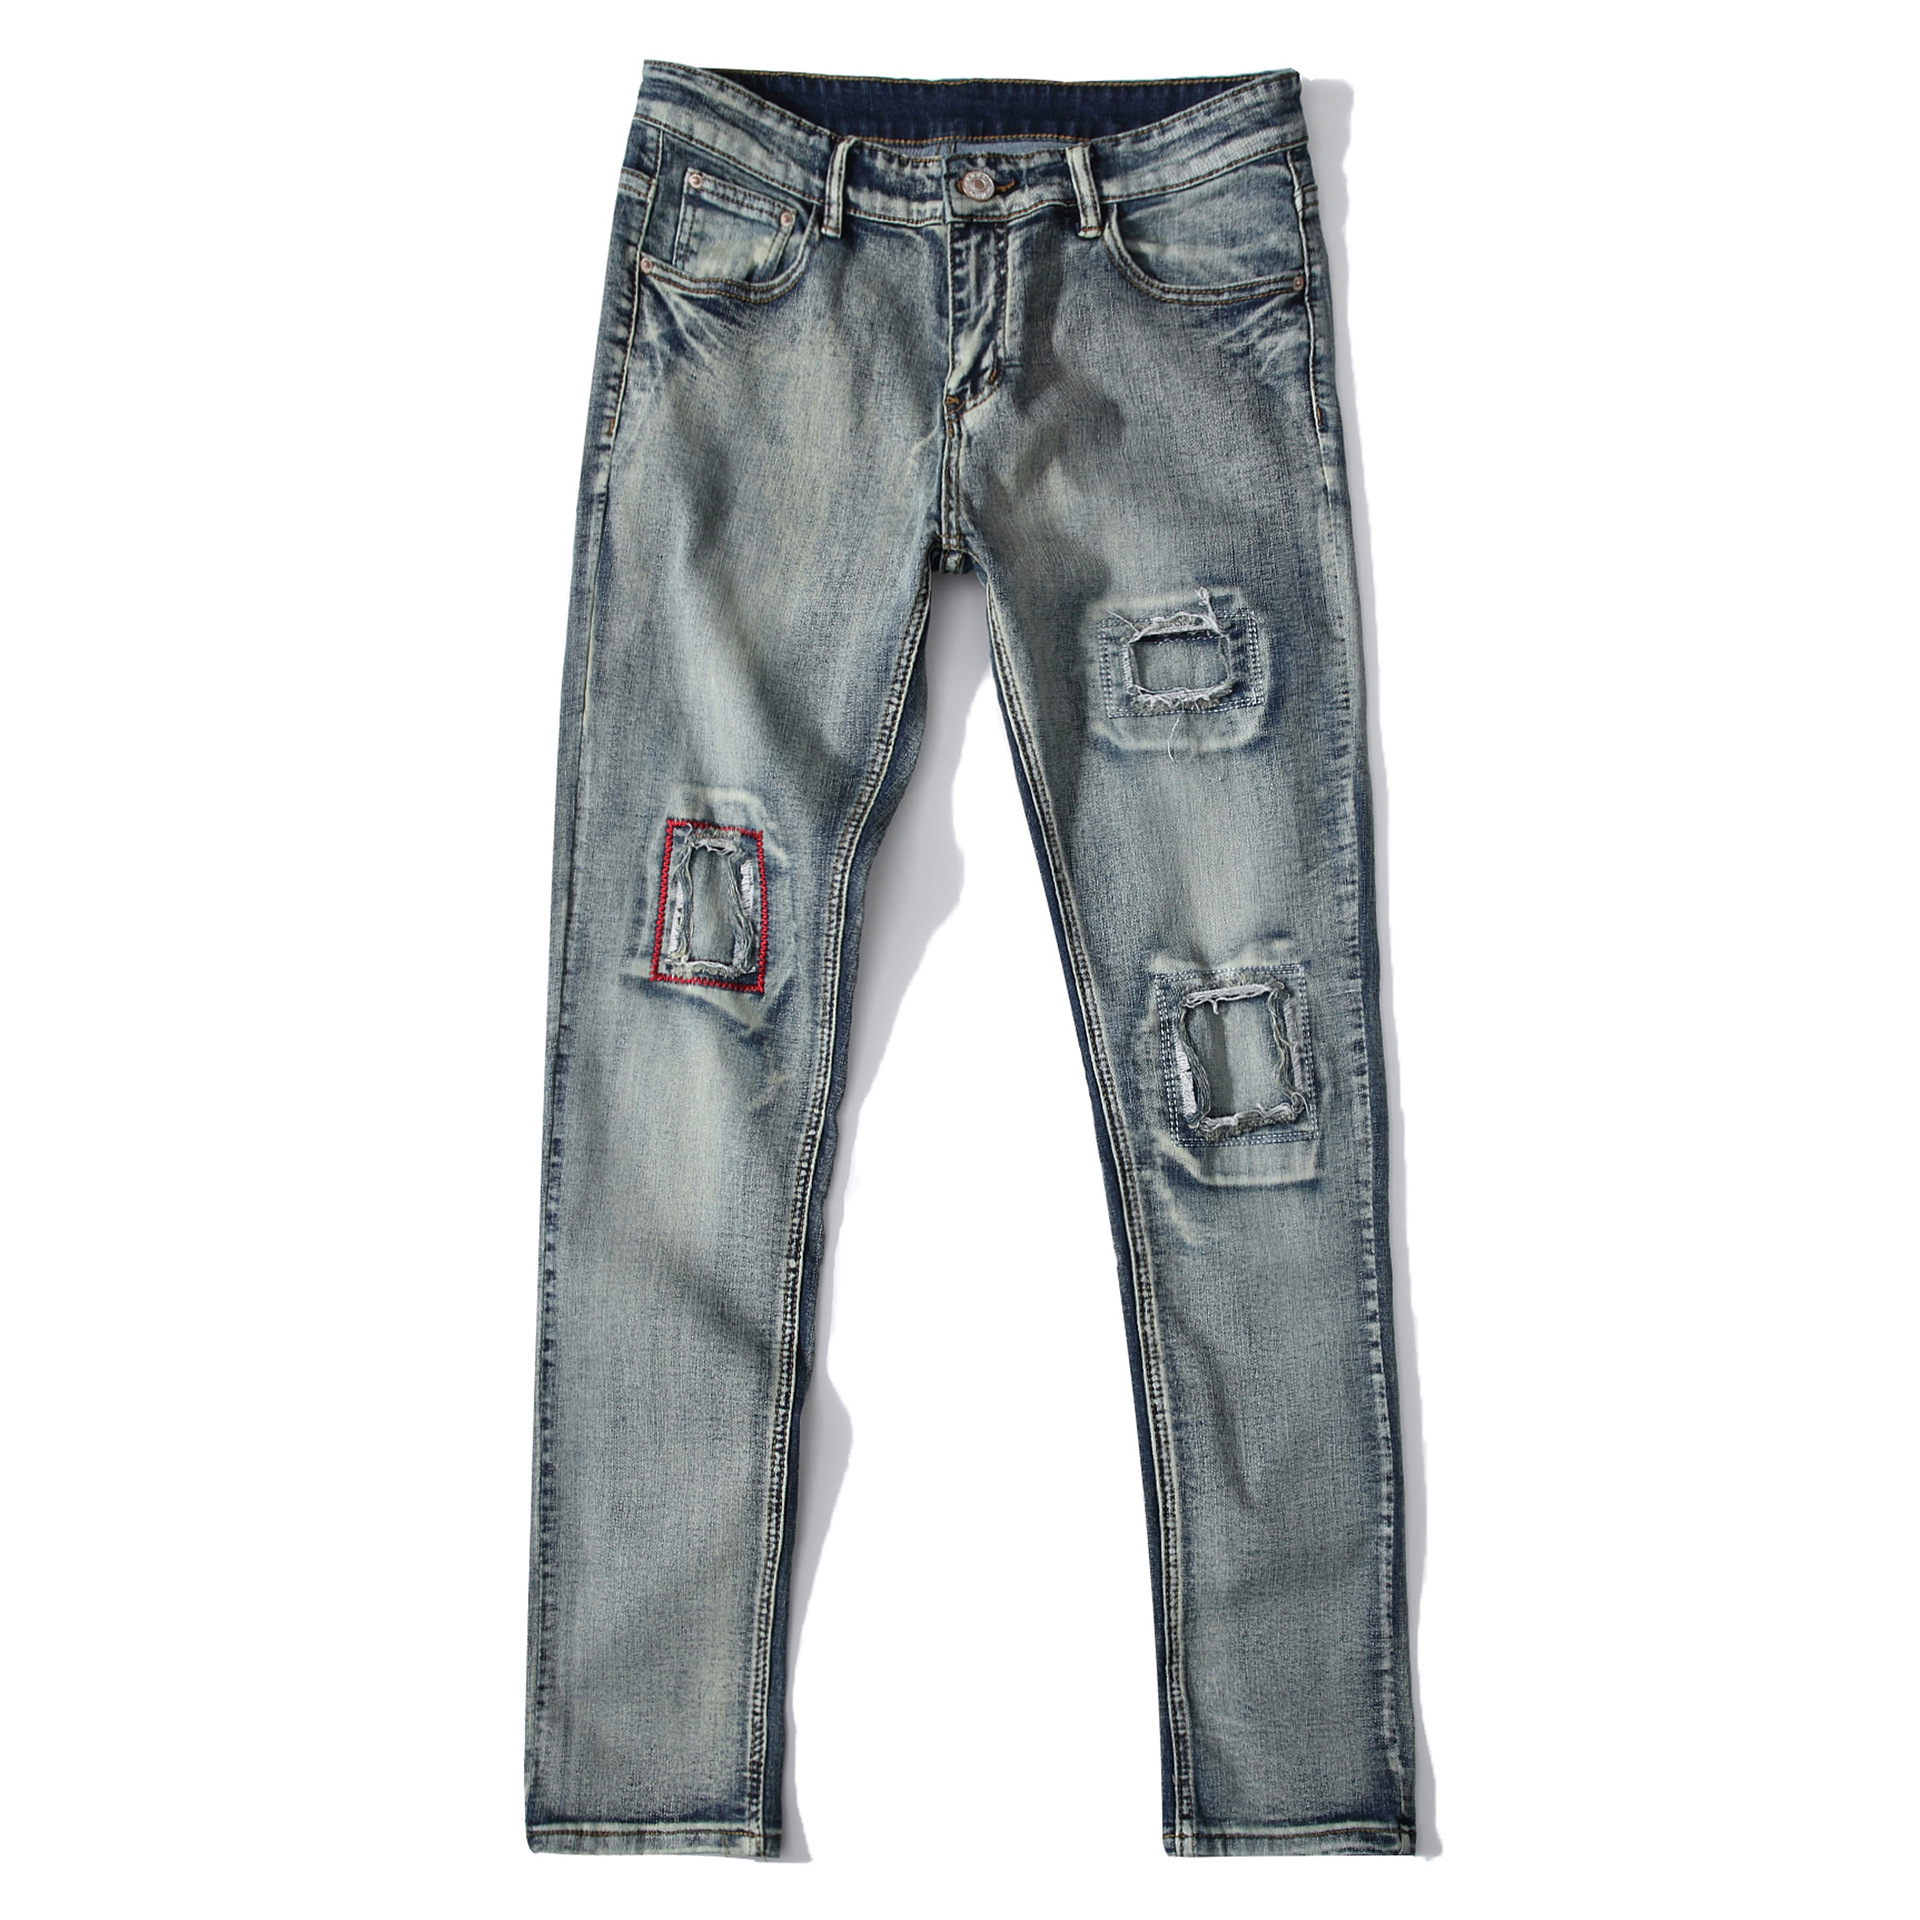 Retro Vintage Men's Holes Embroidery Straight Stretch Jeans Men Slim Ripped Stretch Denim Jeans Homme Pants Casual Jean Trousers women girls casual vintage wash straight leg denim overall suspender jean trousers pants dark blue